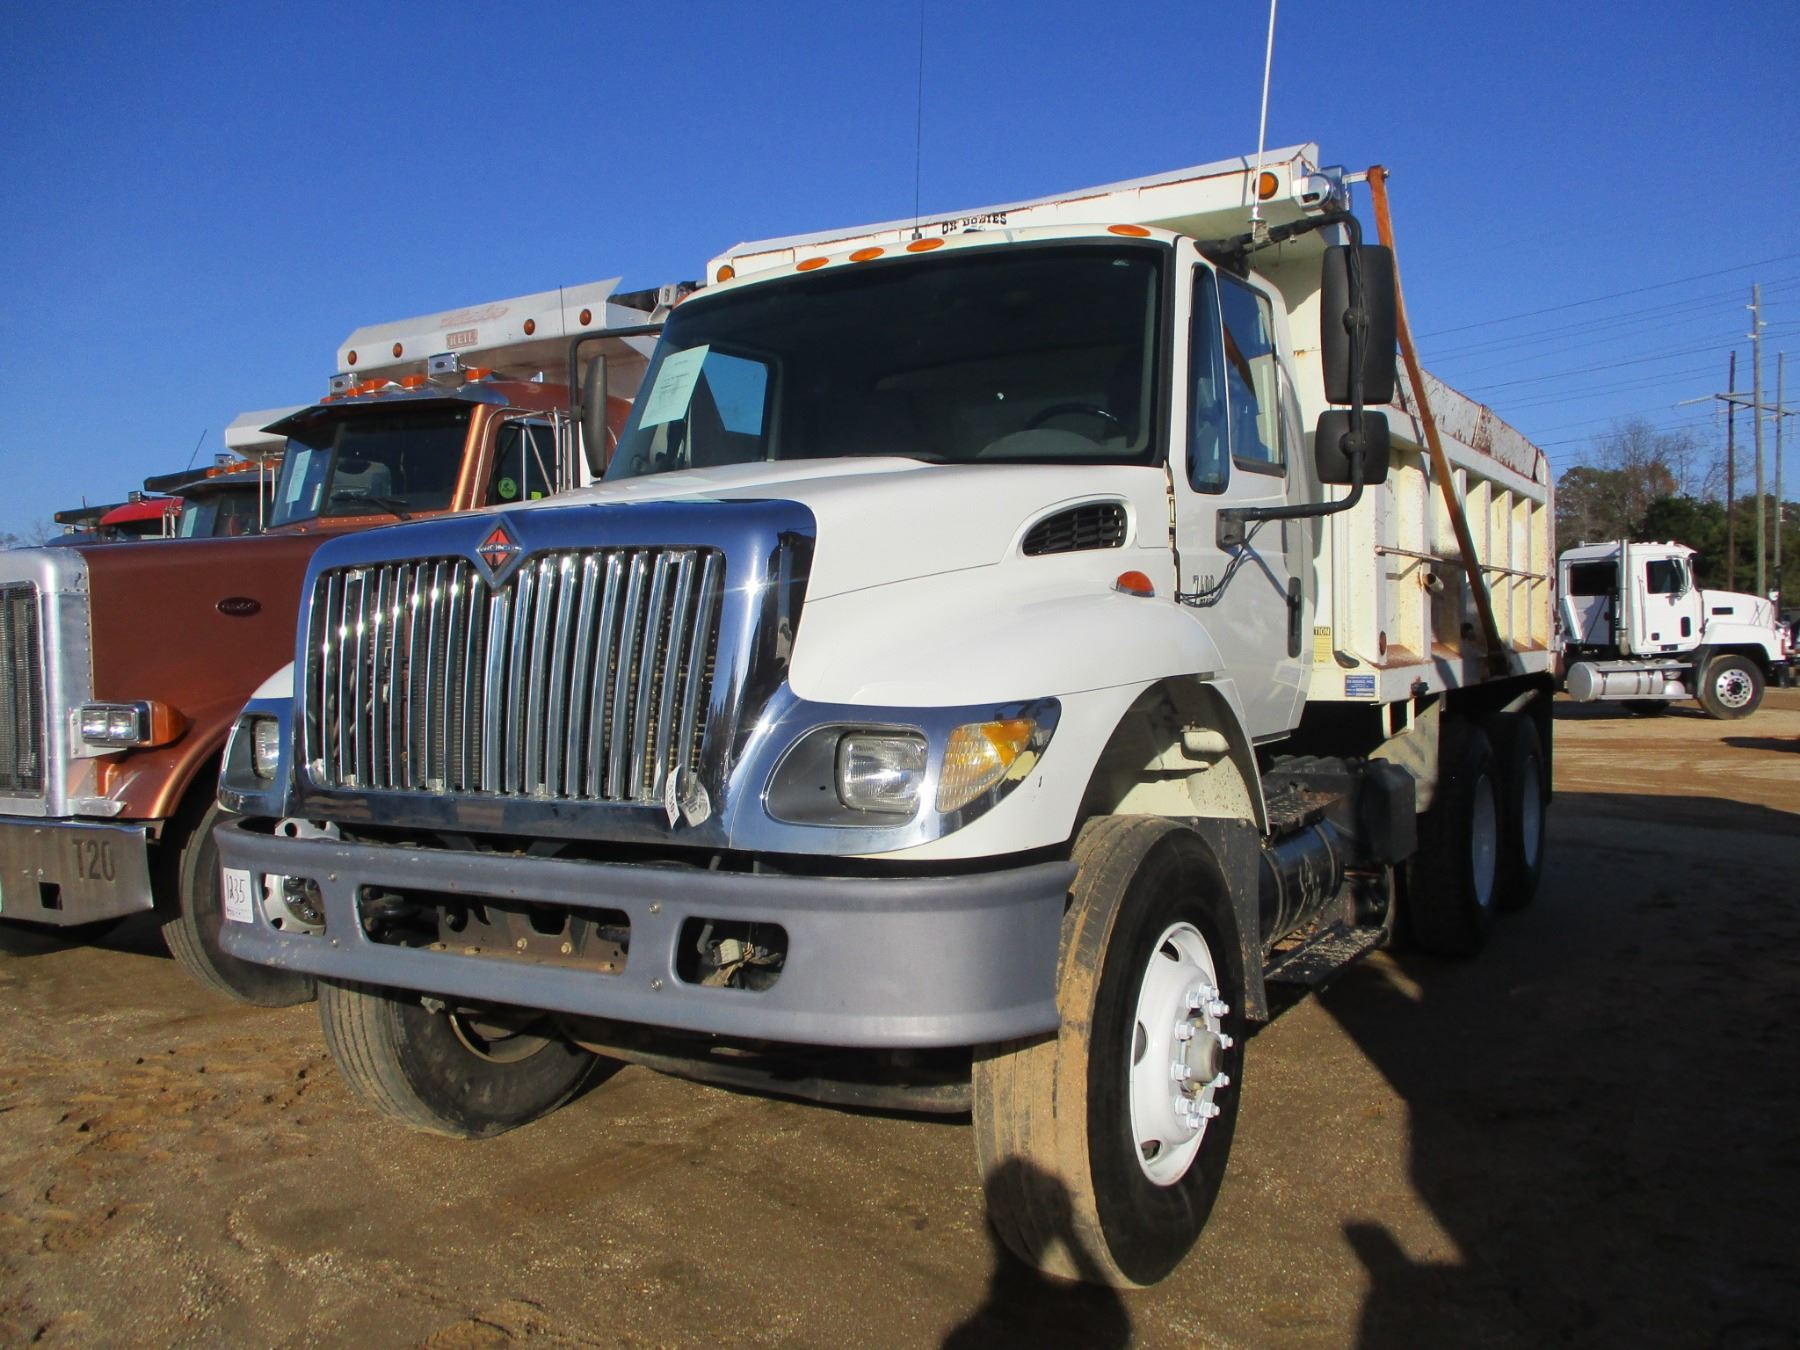 2003 INTERNATIONAL 7400 DUMP TRUCK, VIN/SN:1HTWGADTX3J072387 - T/A, DT530  DIESEL ENGINE, A/T, 14' OX